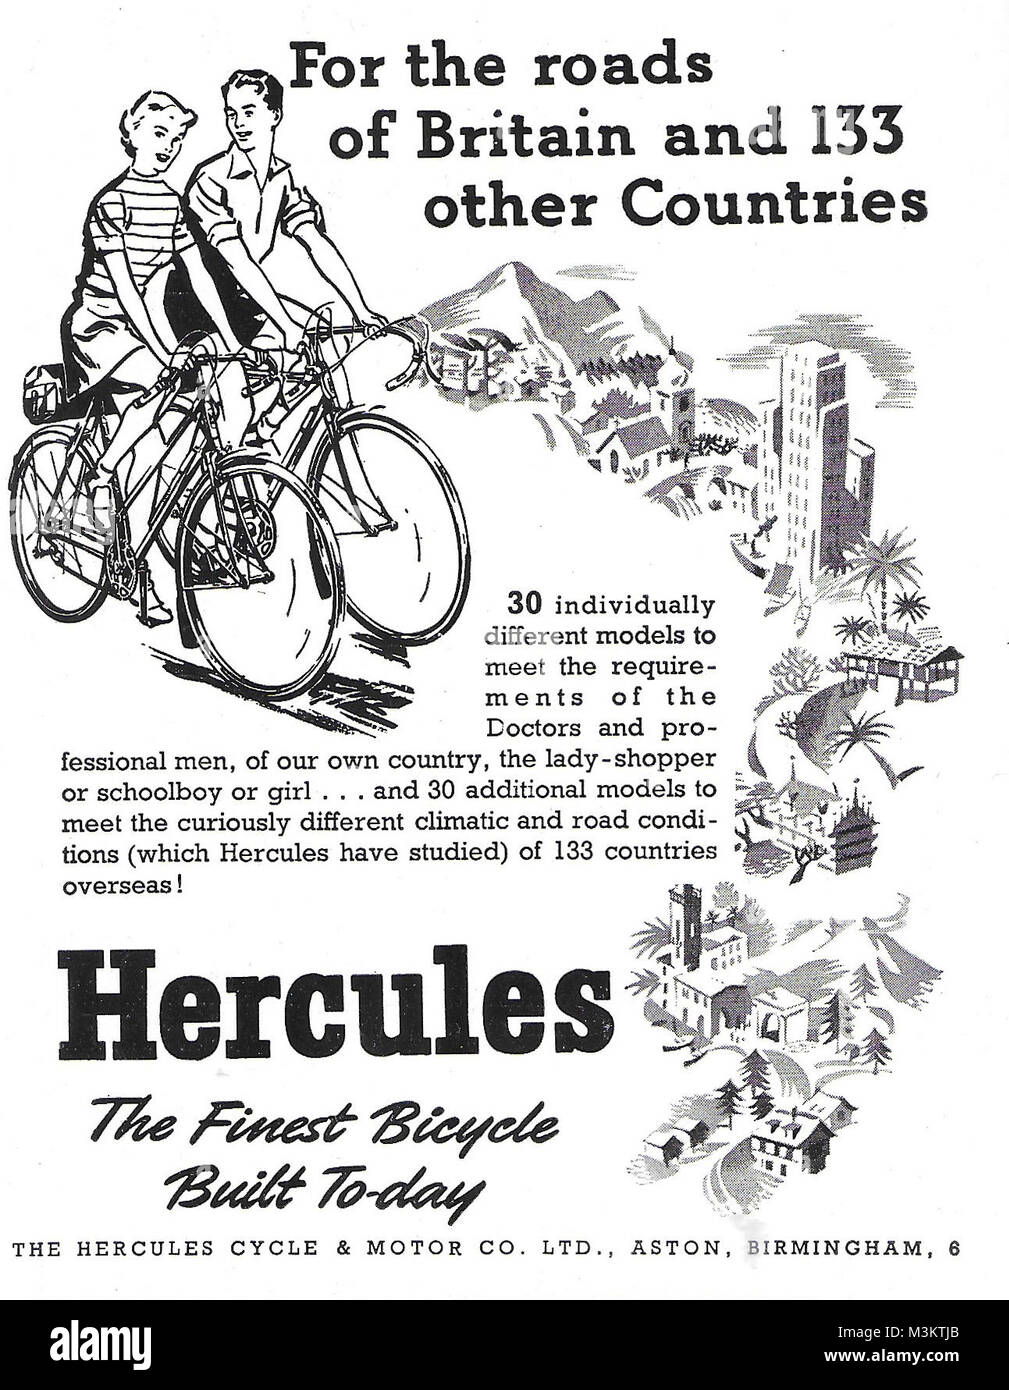 Hercules bicycles advert, advertising in Country Life magazine UK 1951 - Stock Image